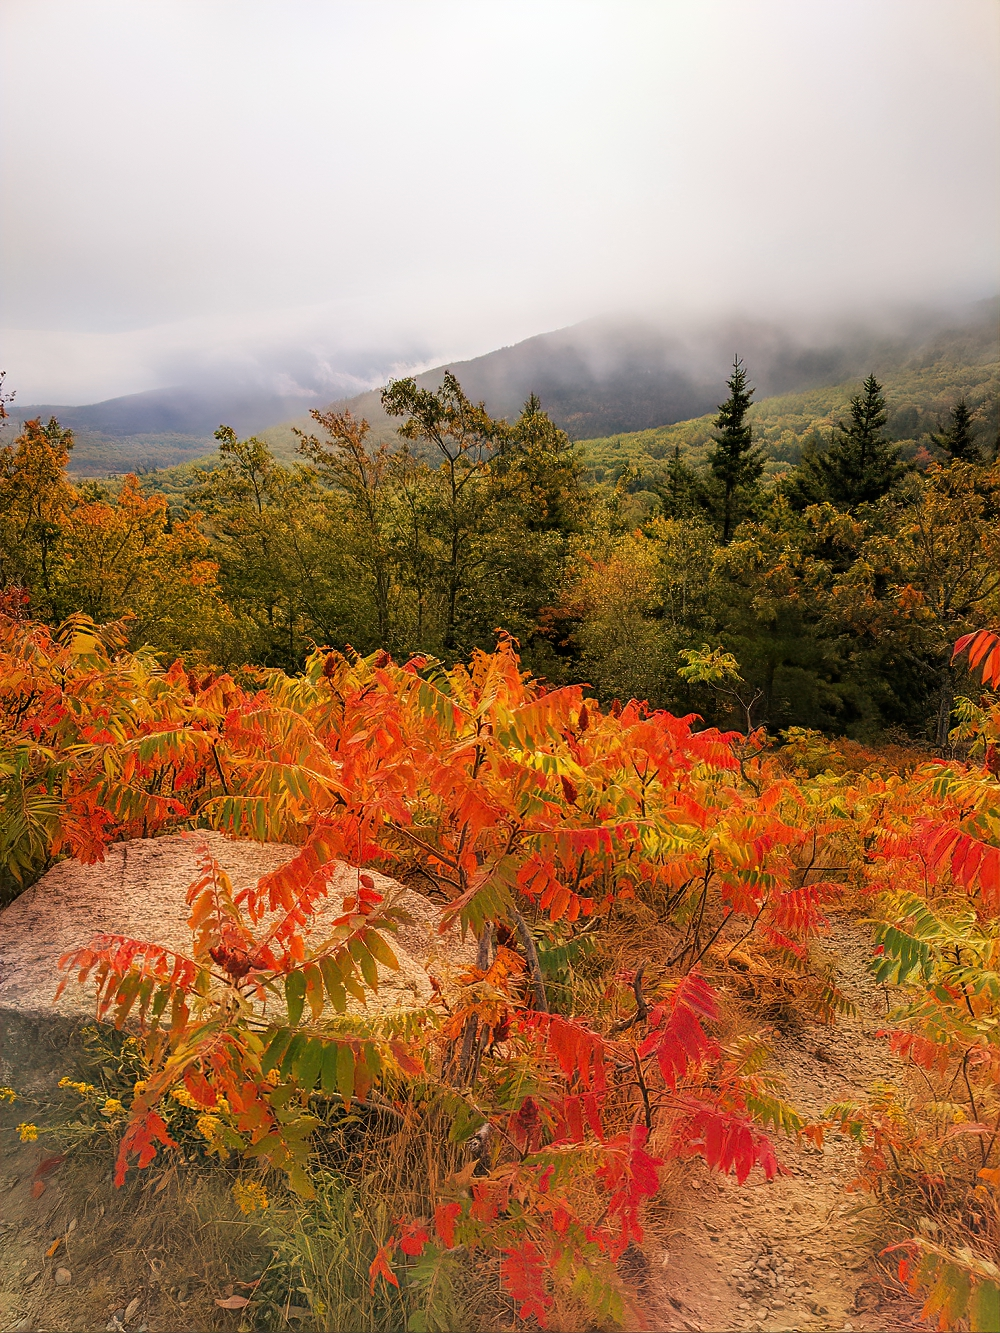 Fall foliage. Foggy morning in Acadia National Park.